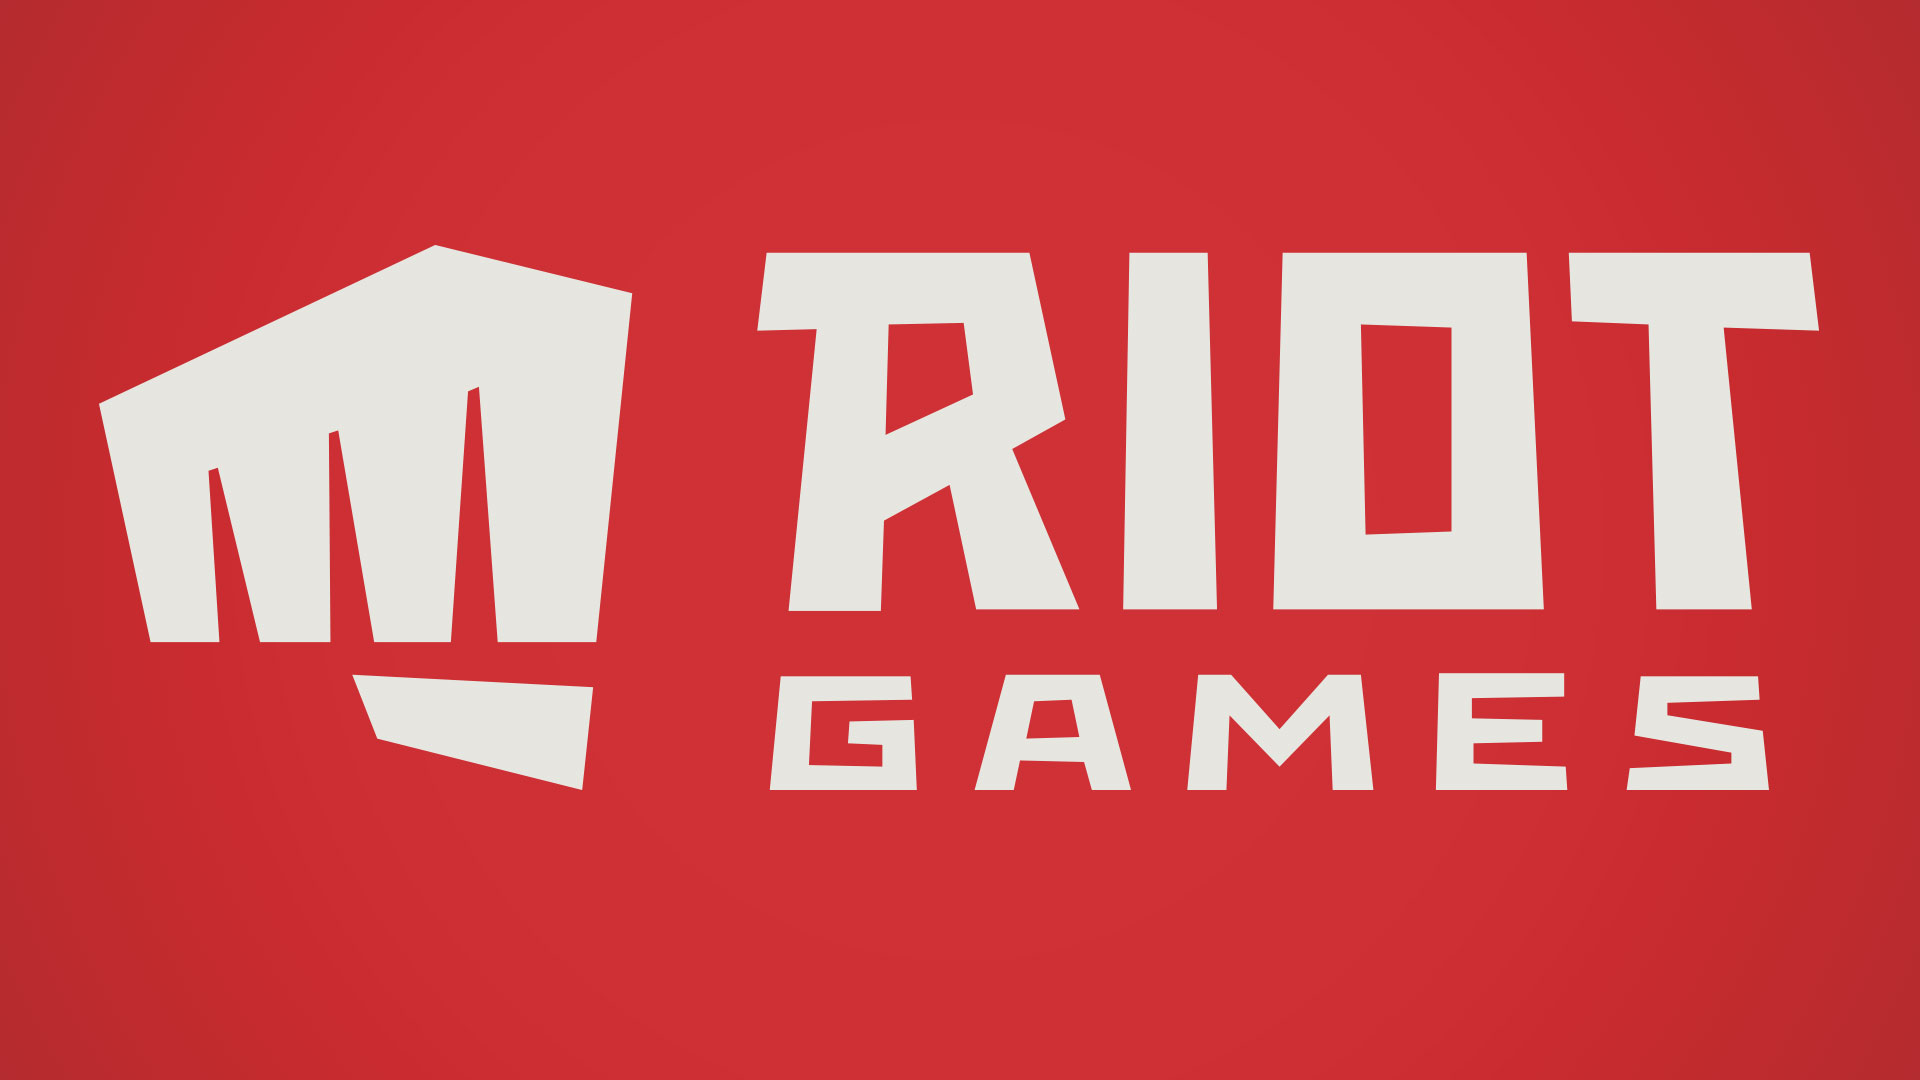 Riot Games' new logo packs a punch